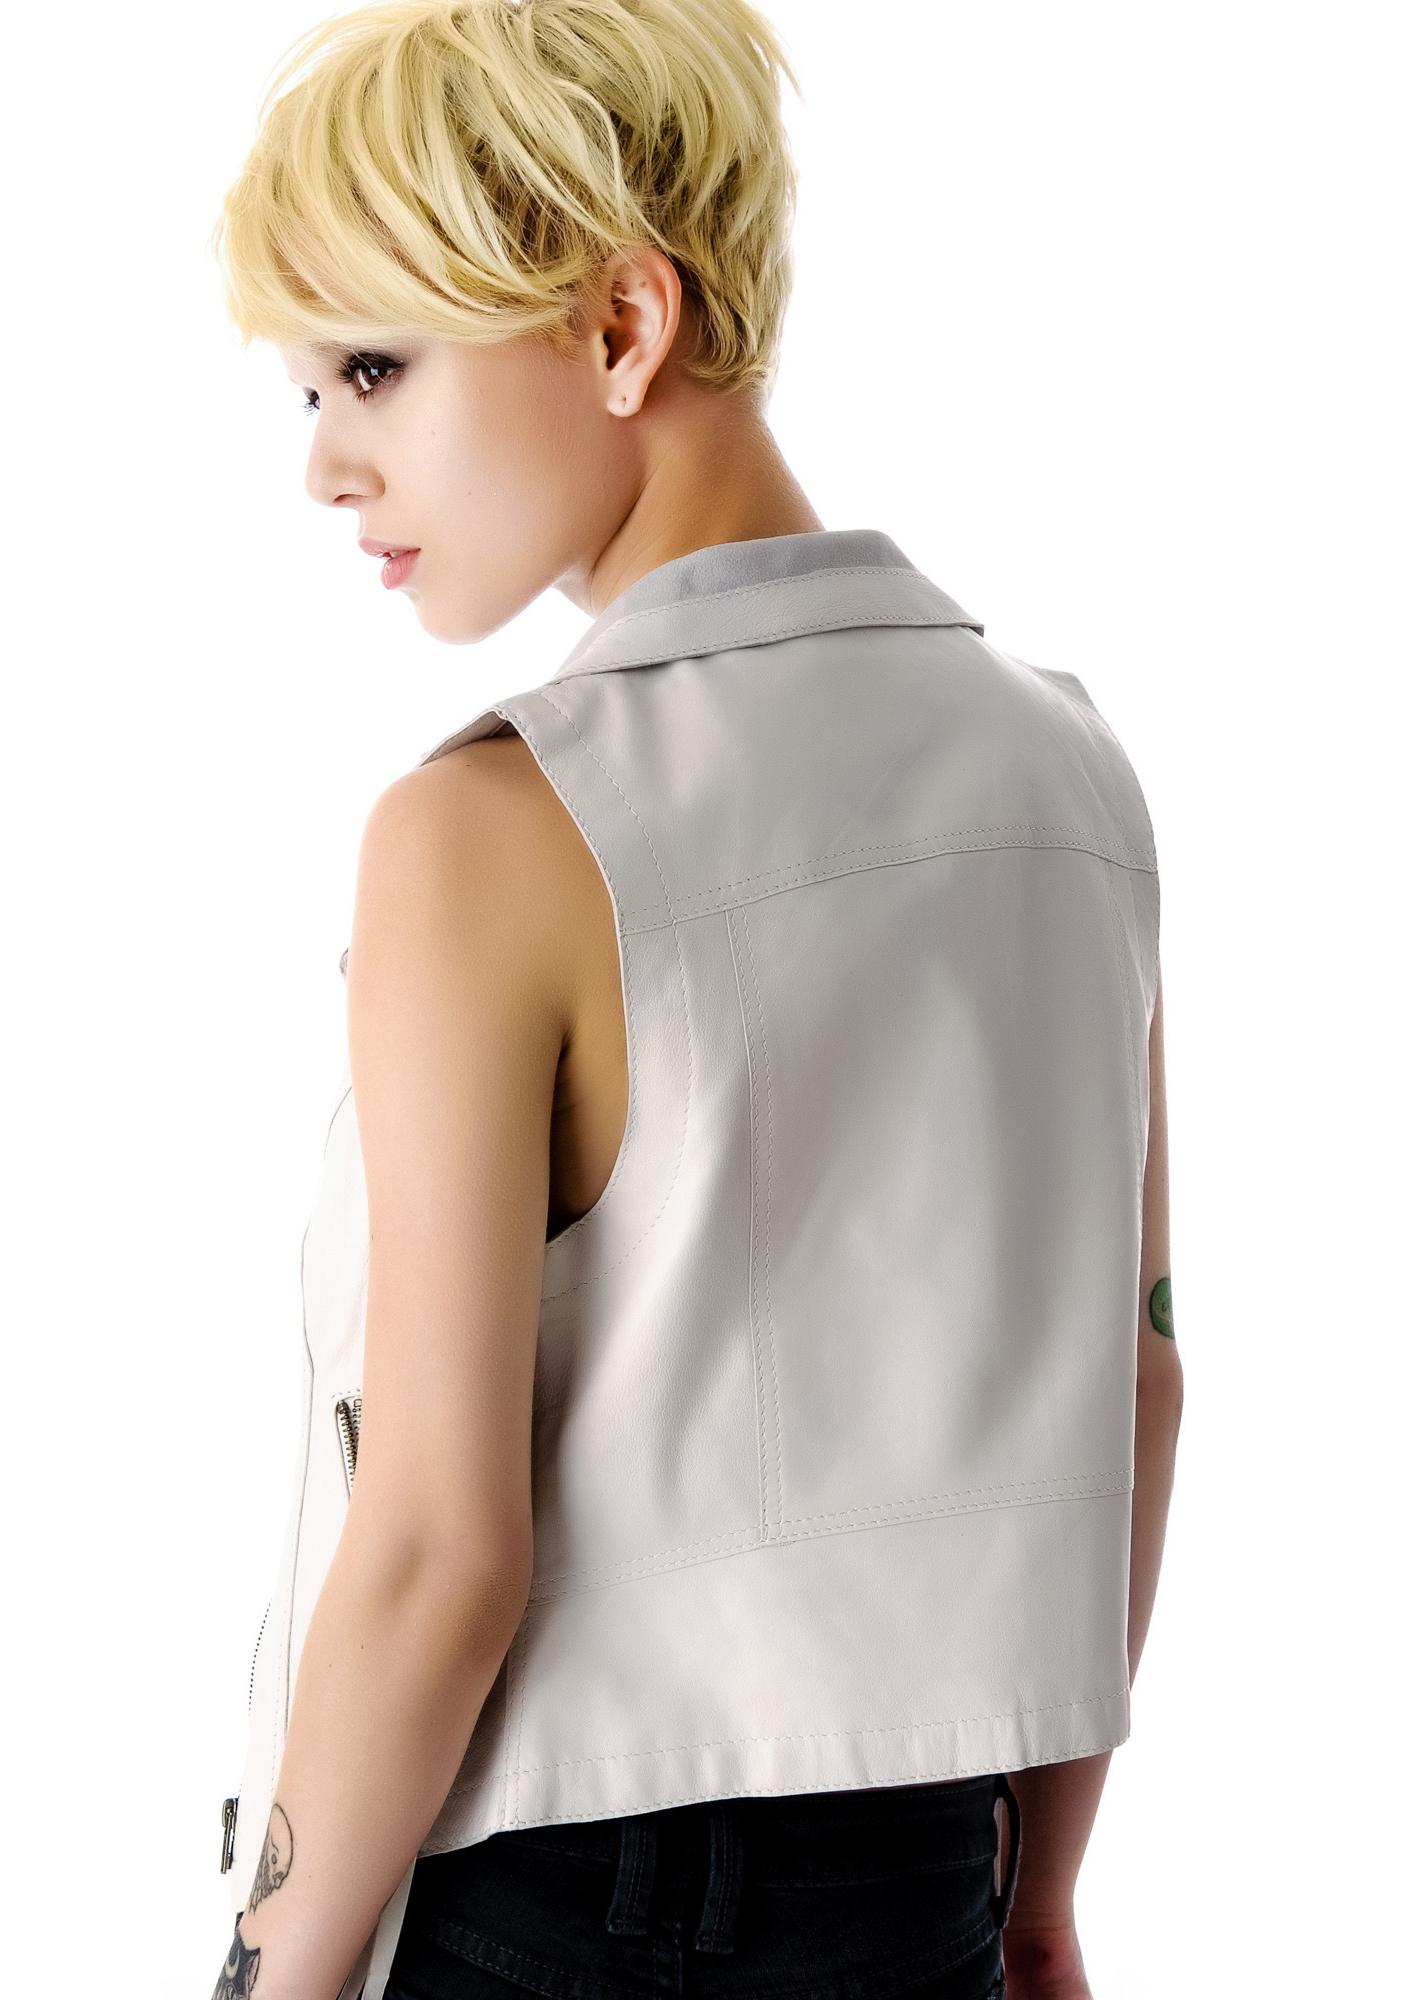 Kill City Right To Bare Arms Leather Vest